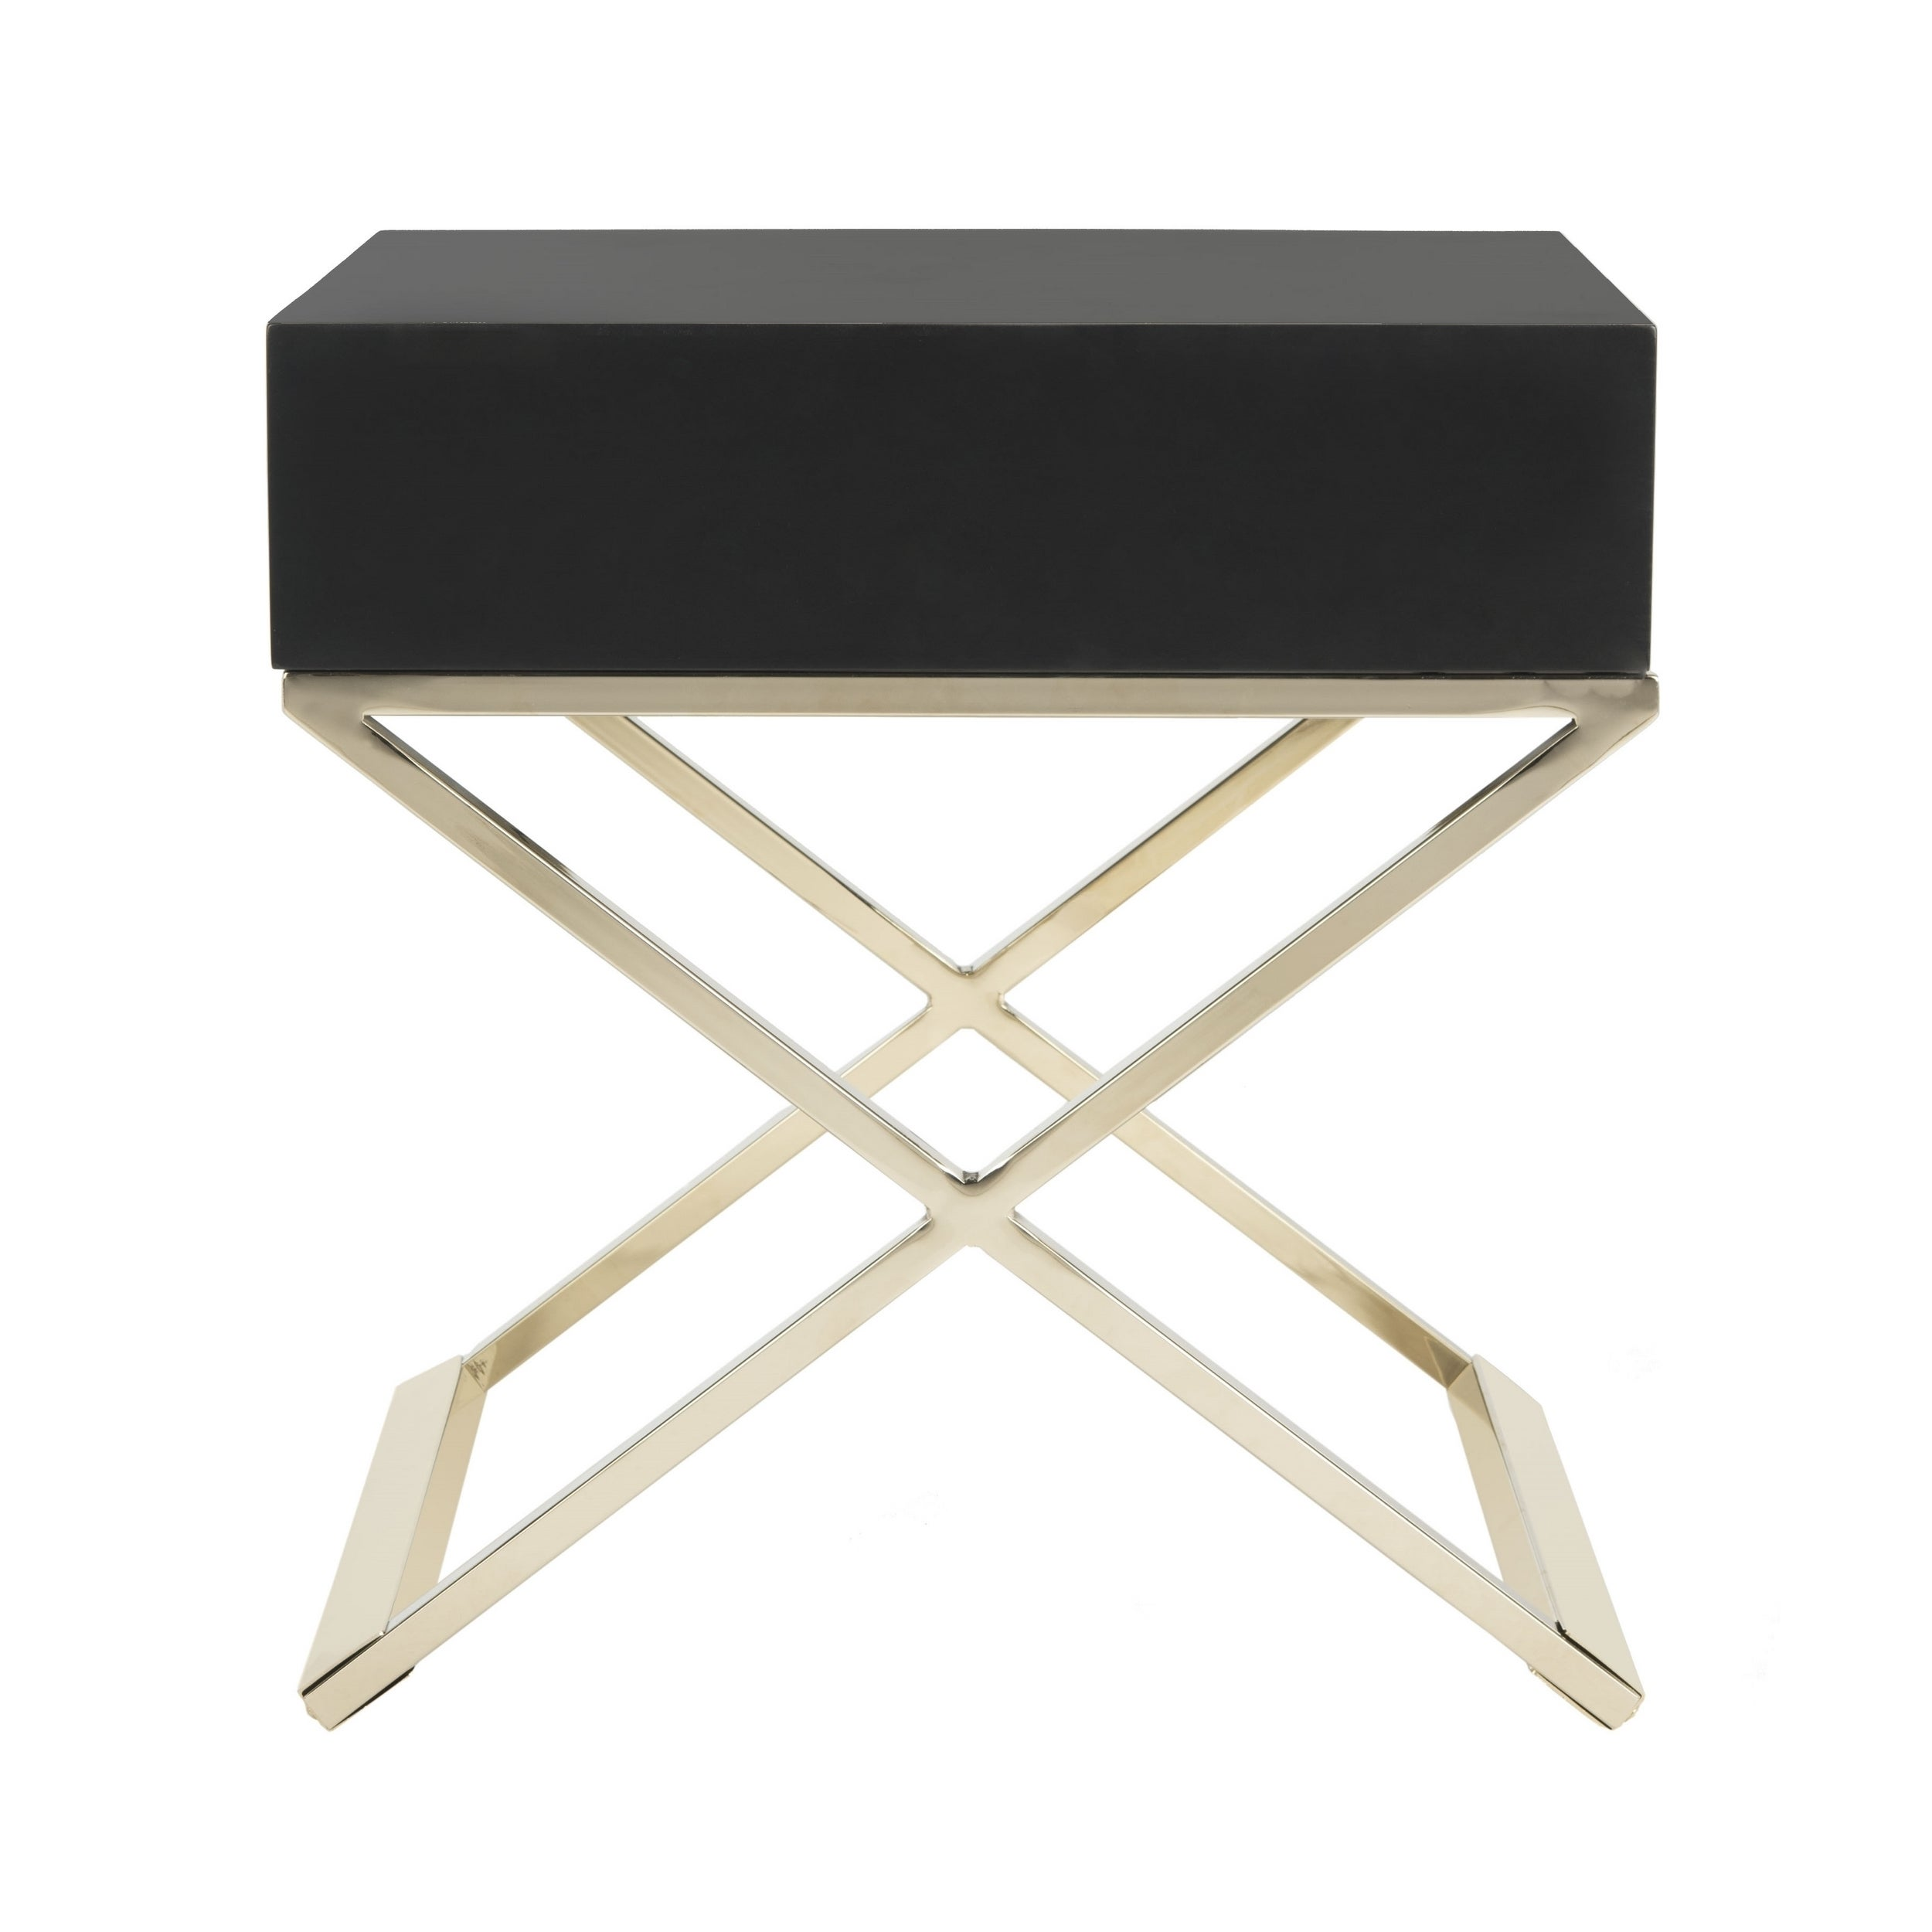 Safavieh Zarina Modern Cross Leg Black End Table/ Night Stand   Free  Shipping Today   Overstock   22687159